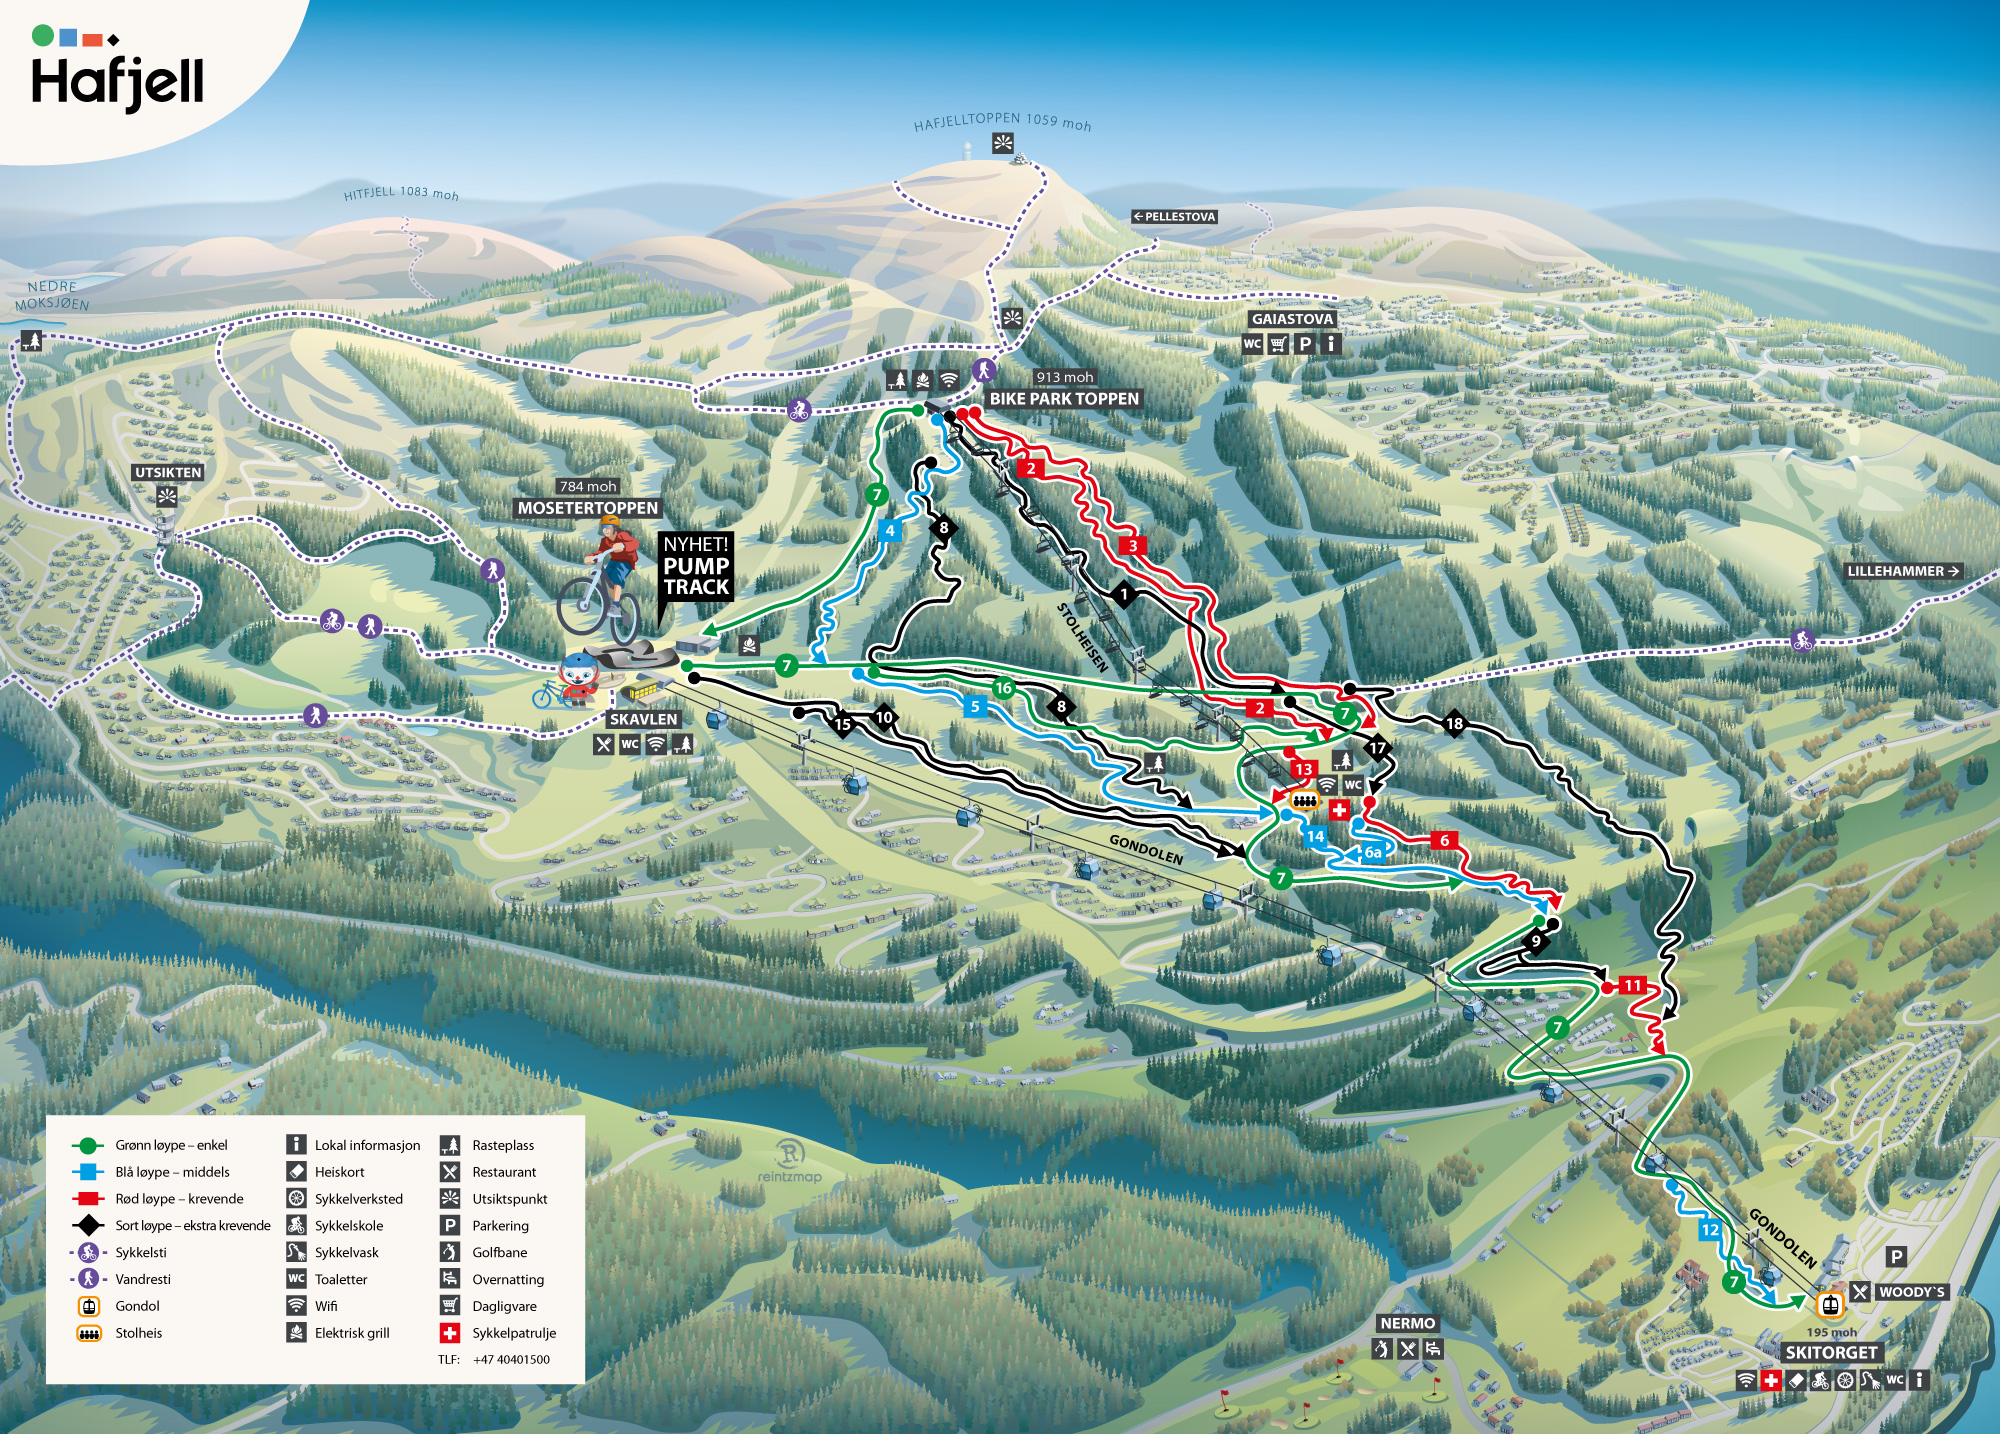 Hafjell bike park map